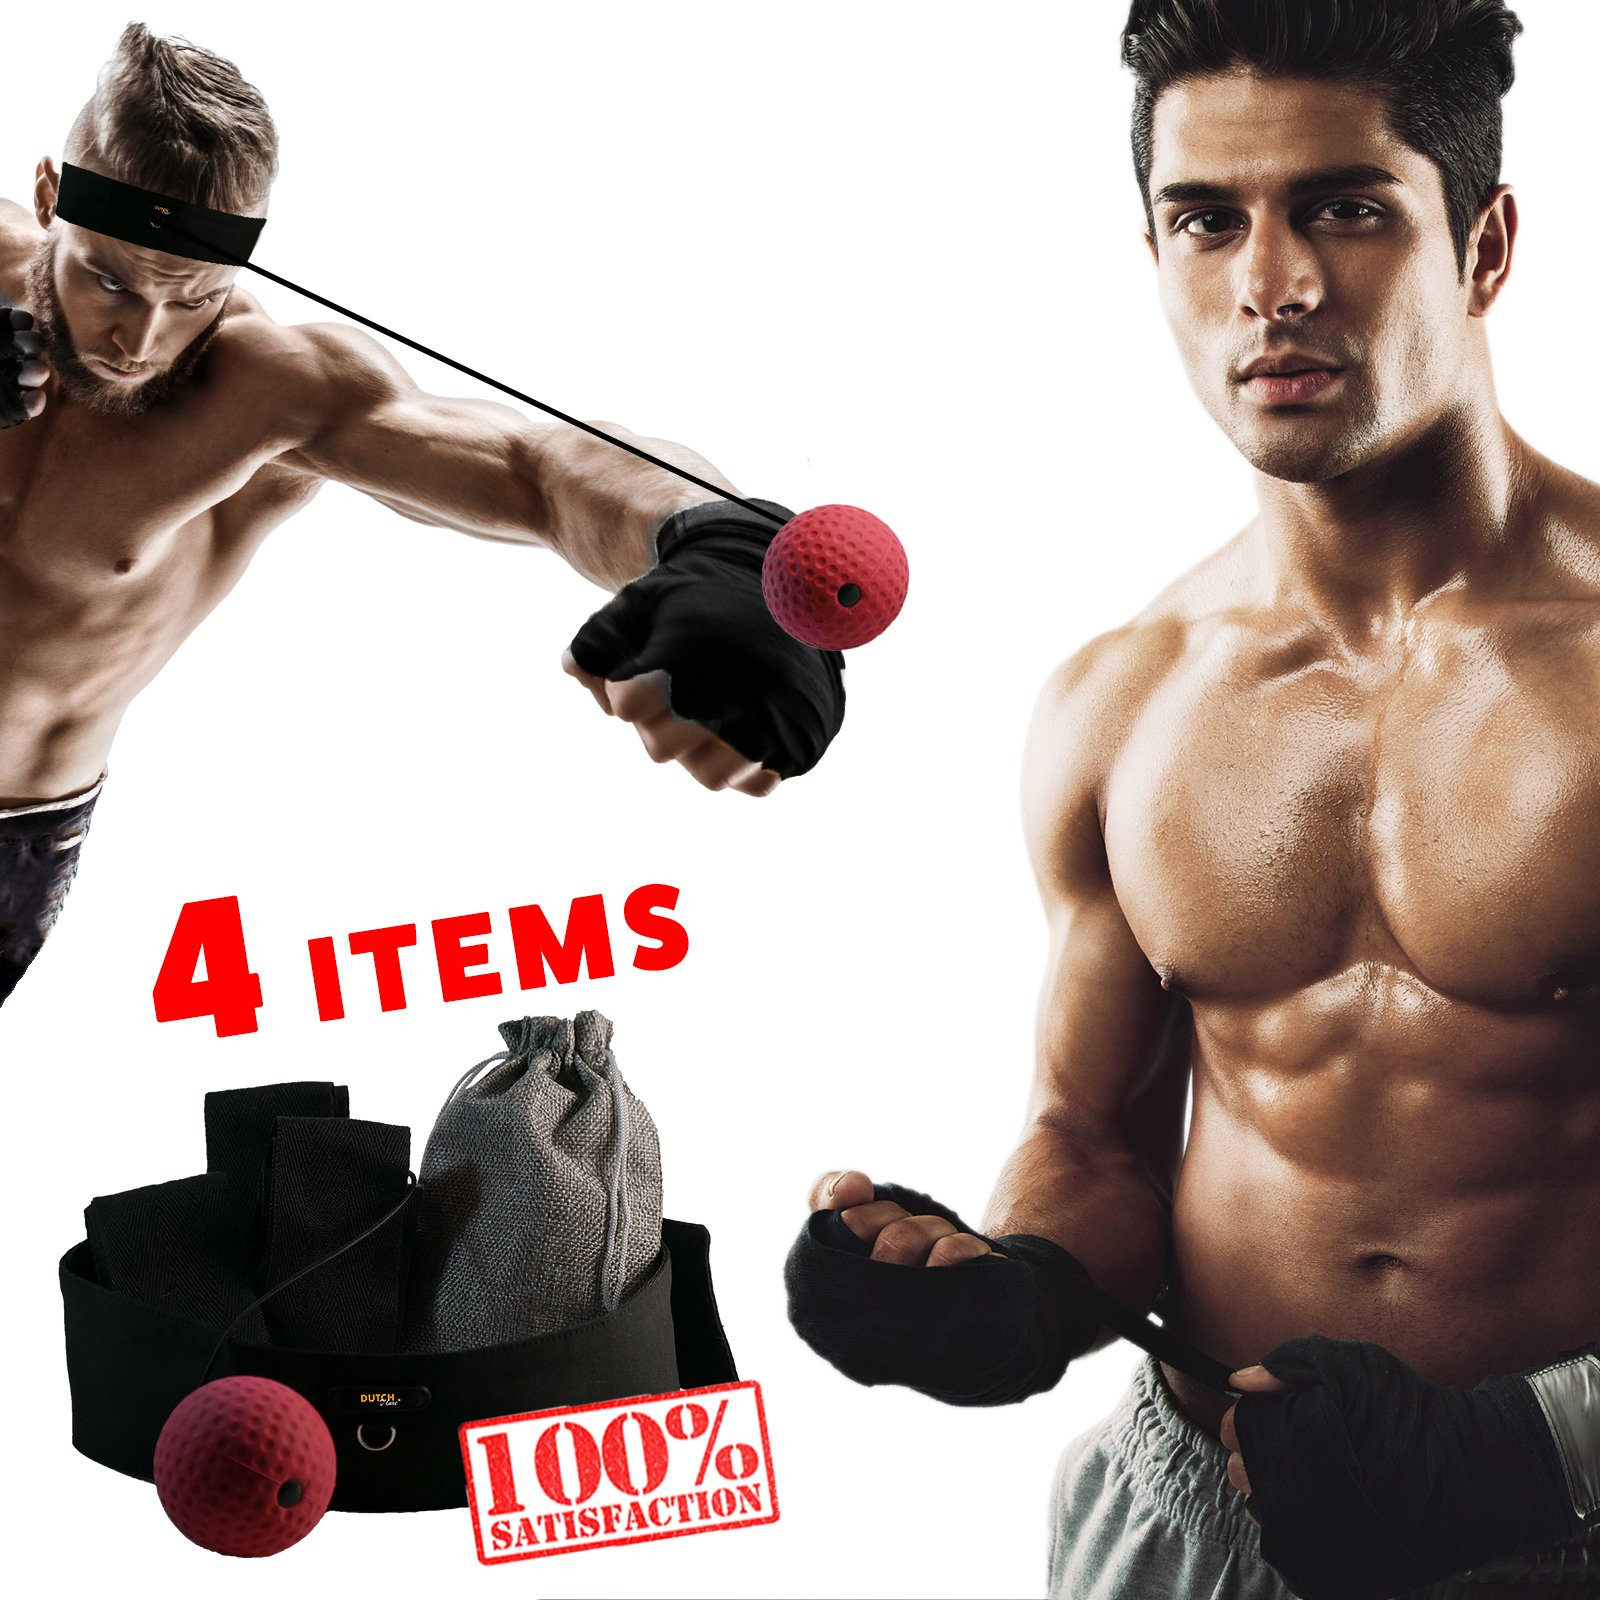 Dutch D-luxe Boxing Reflex Ball to Improve Speed and Concentration, Reflex Punch Ball with Headband for MMA Training, Burn Calories with Fun Speed Game Boxing All Sizes! - With Free Boxing Gloves